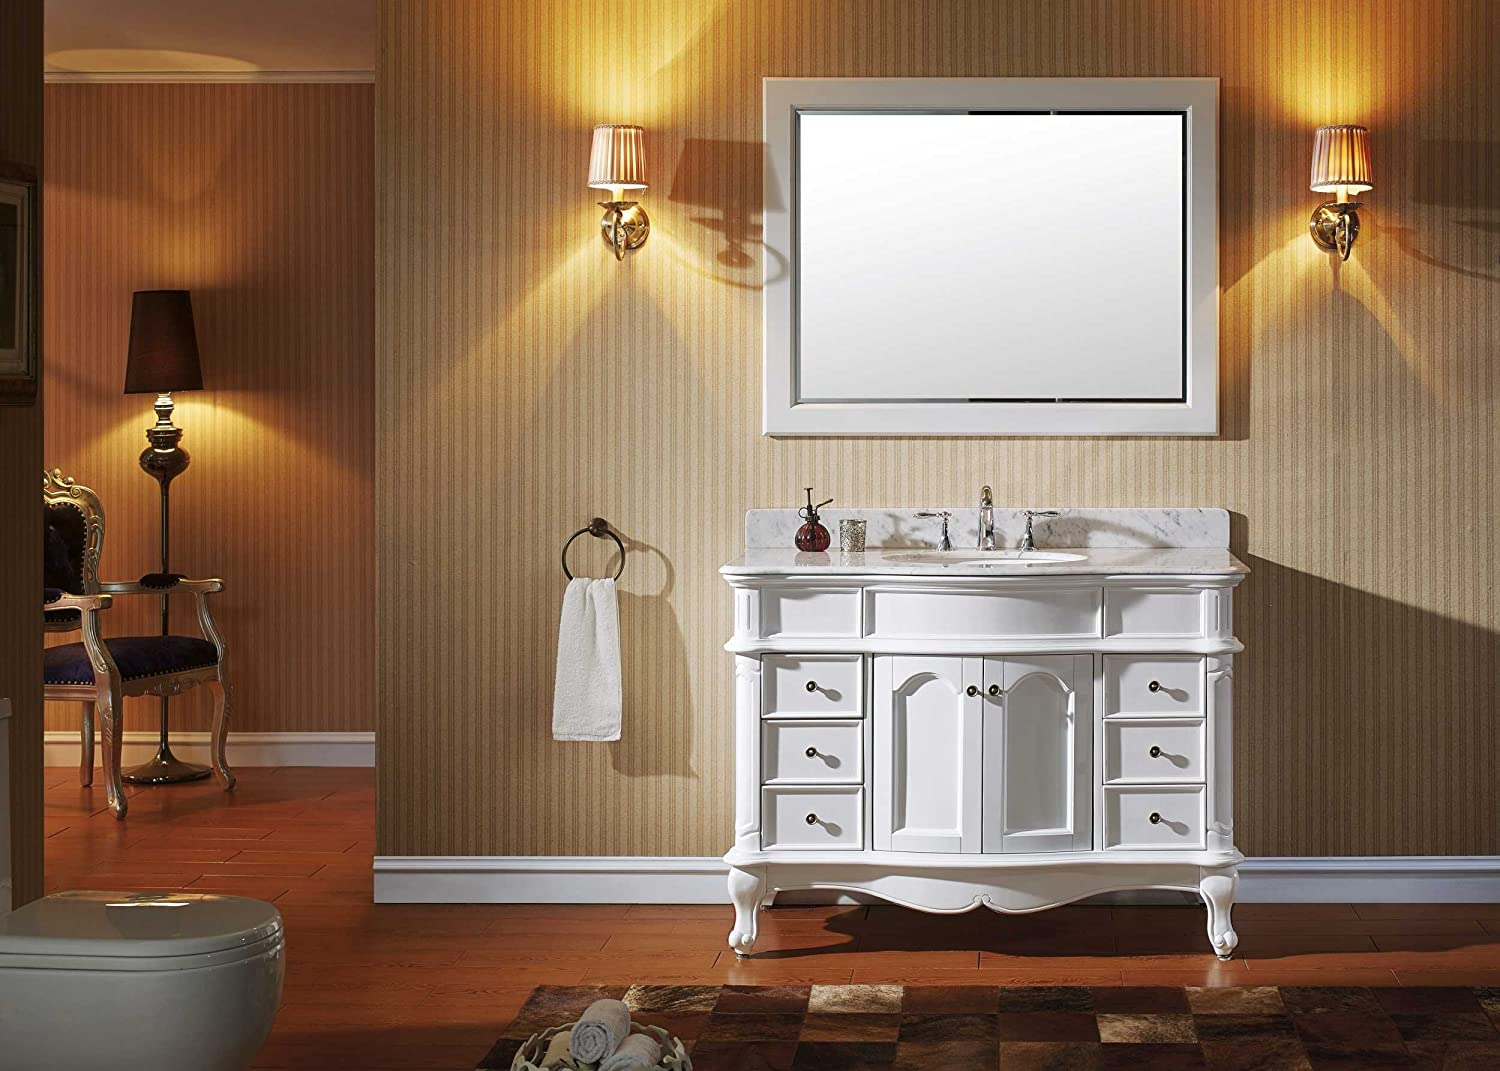 Bathroom vanity with cabinet on top - Virtu Es 27048 Wmro Wh Norhaven Single Bathroom Vanity Cabinet Set 48 White Amazon Com